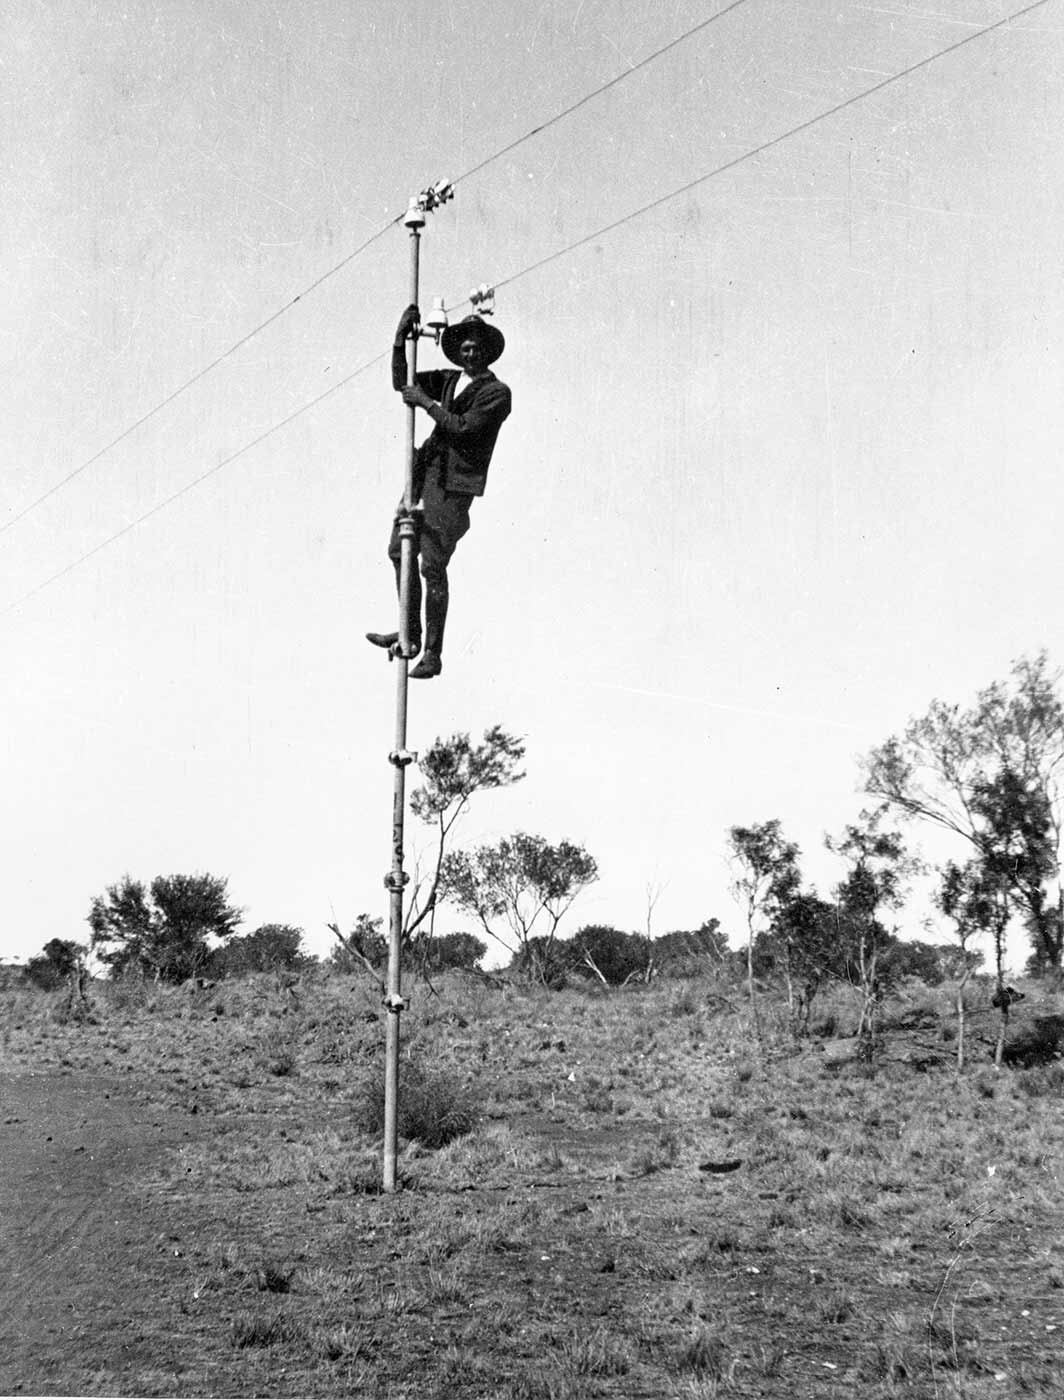 A black and white photo taken in the 1920s of a man who has climbed up to the top of a pole. - click to view larger image